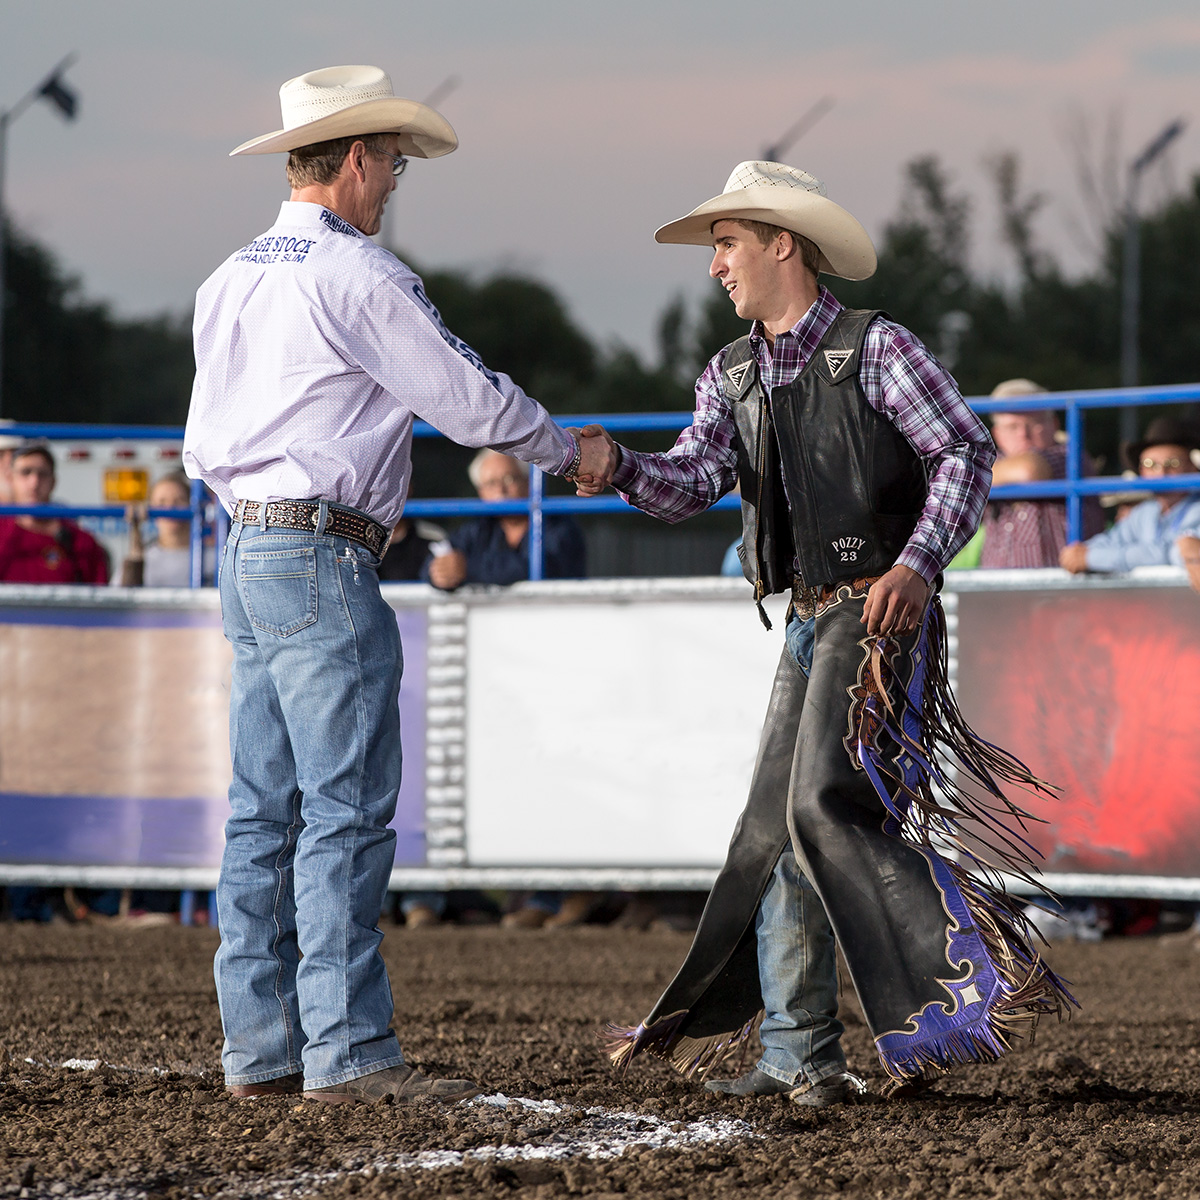 Radley competed on the Tuff Hedeman Bull Riding Tour during his first successful NFR run.